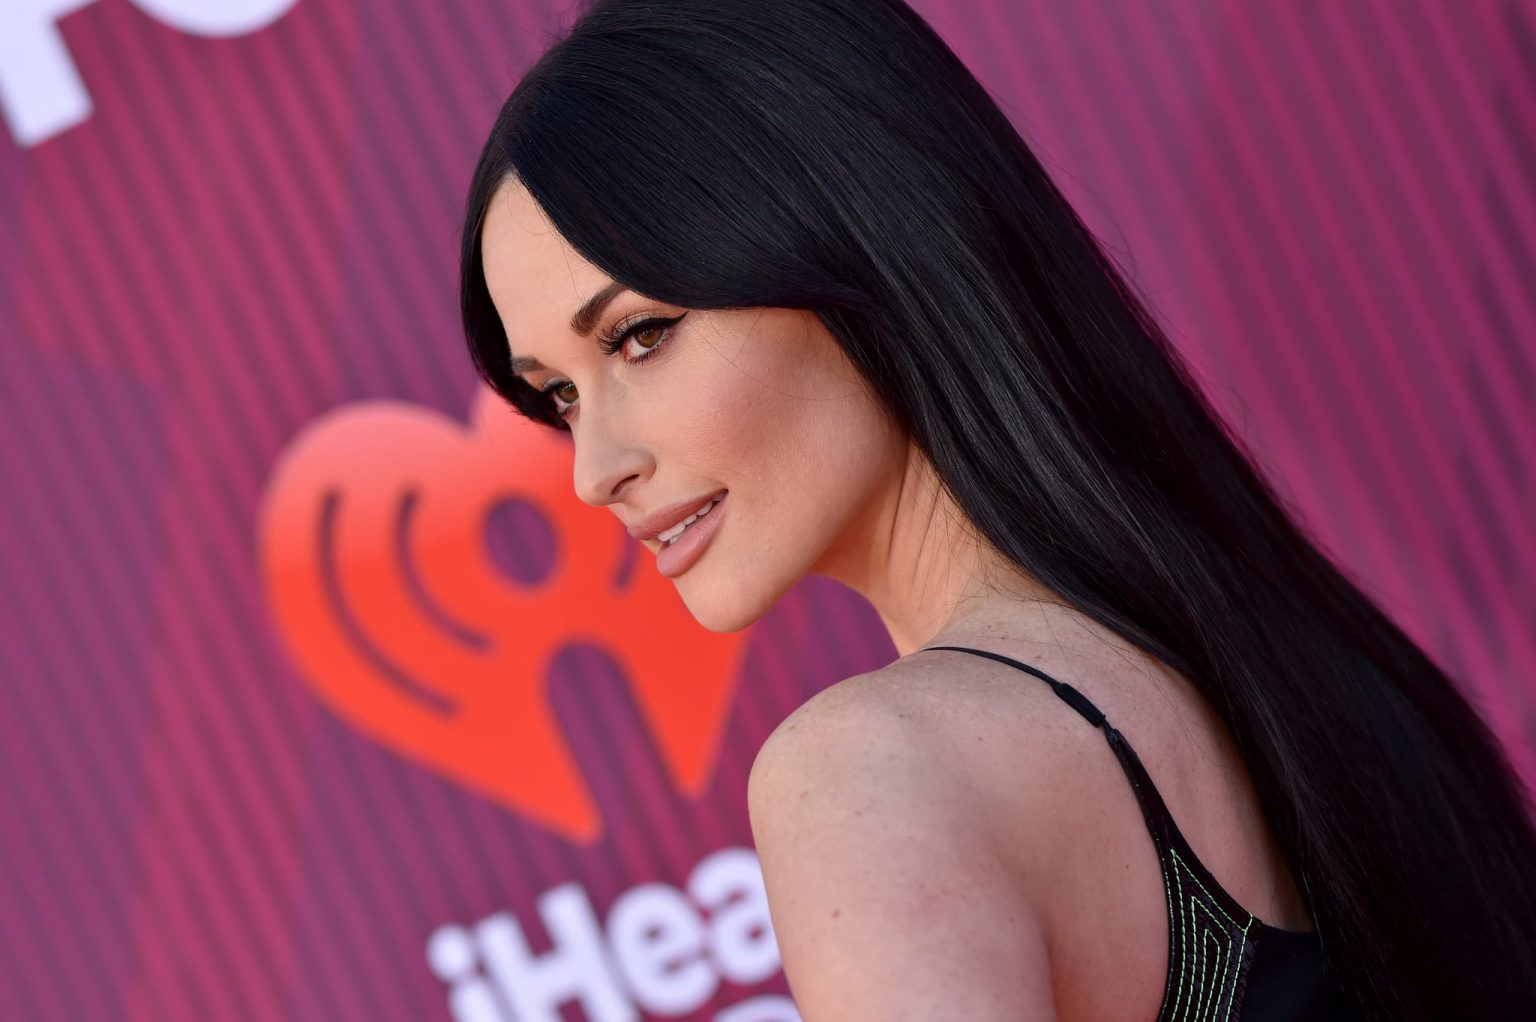 Did Kacey Musgraves have Plastic Surgery? Lips, Botox, Nose Job, and More! - Plastic Surgery Celebs